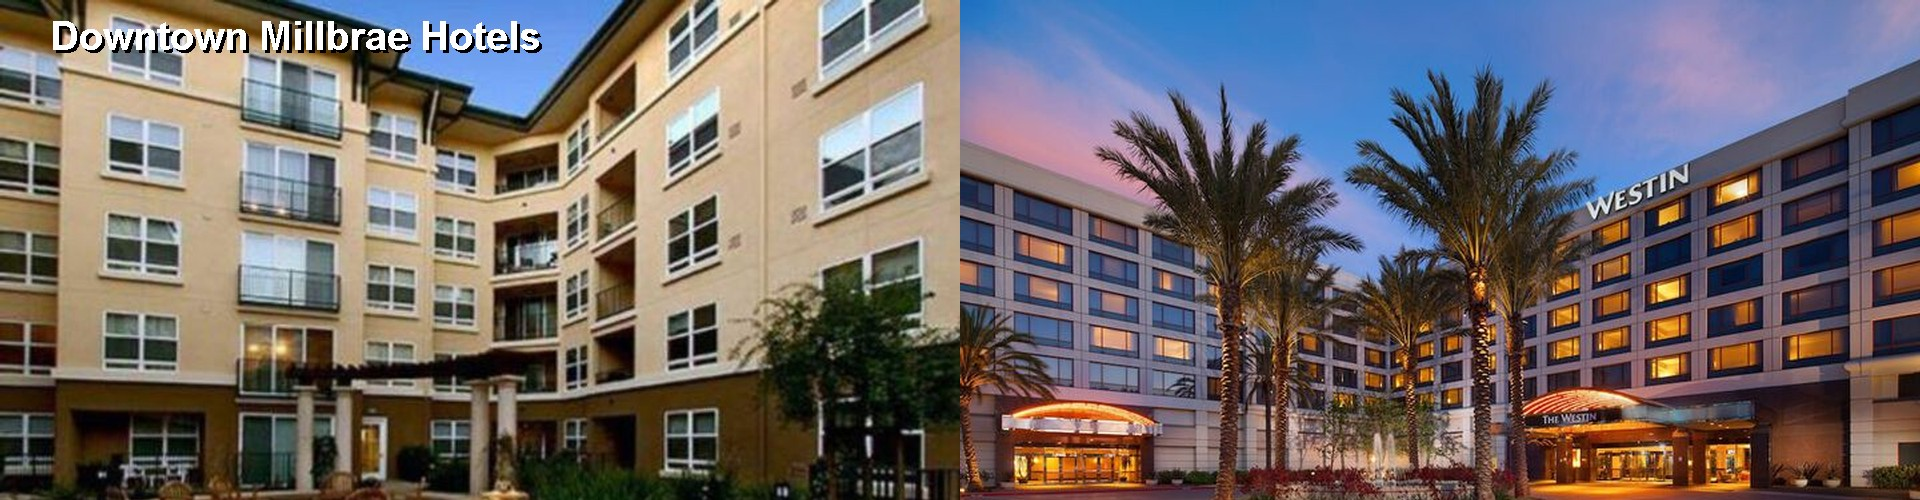 5 Best Hotels near Downtown Millbrae